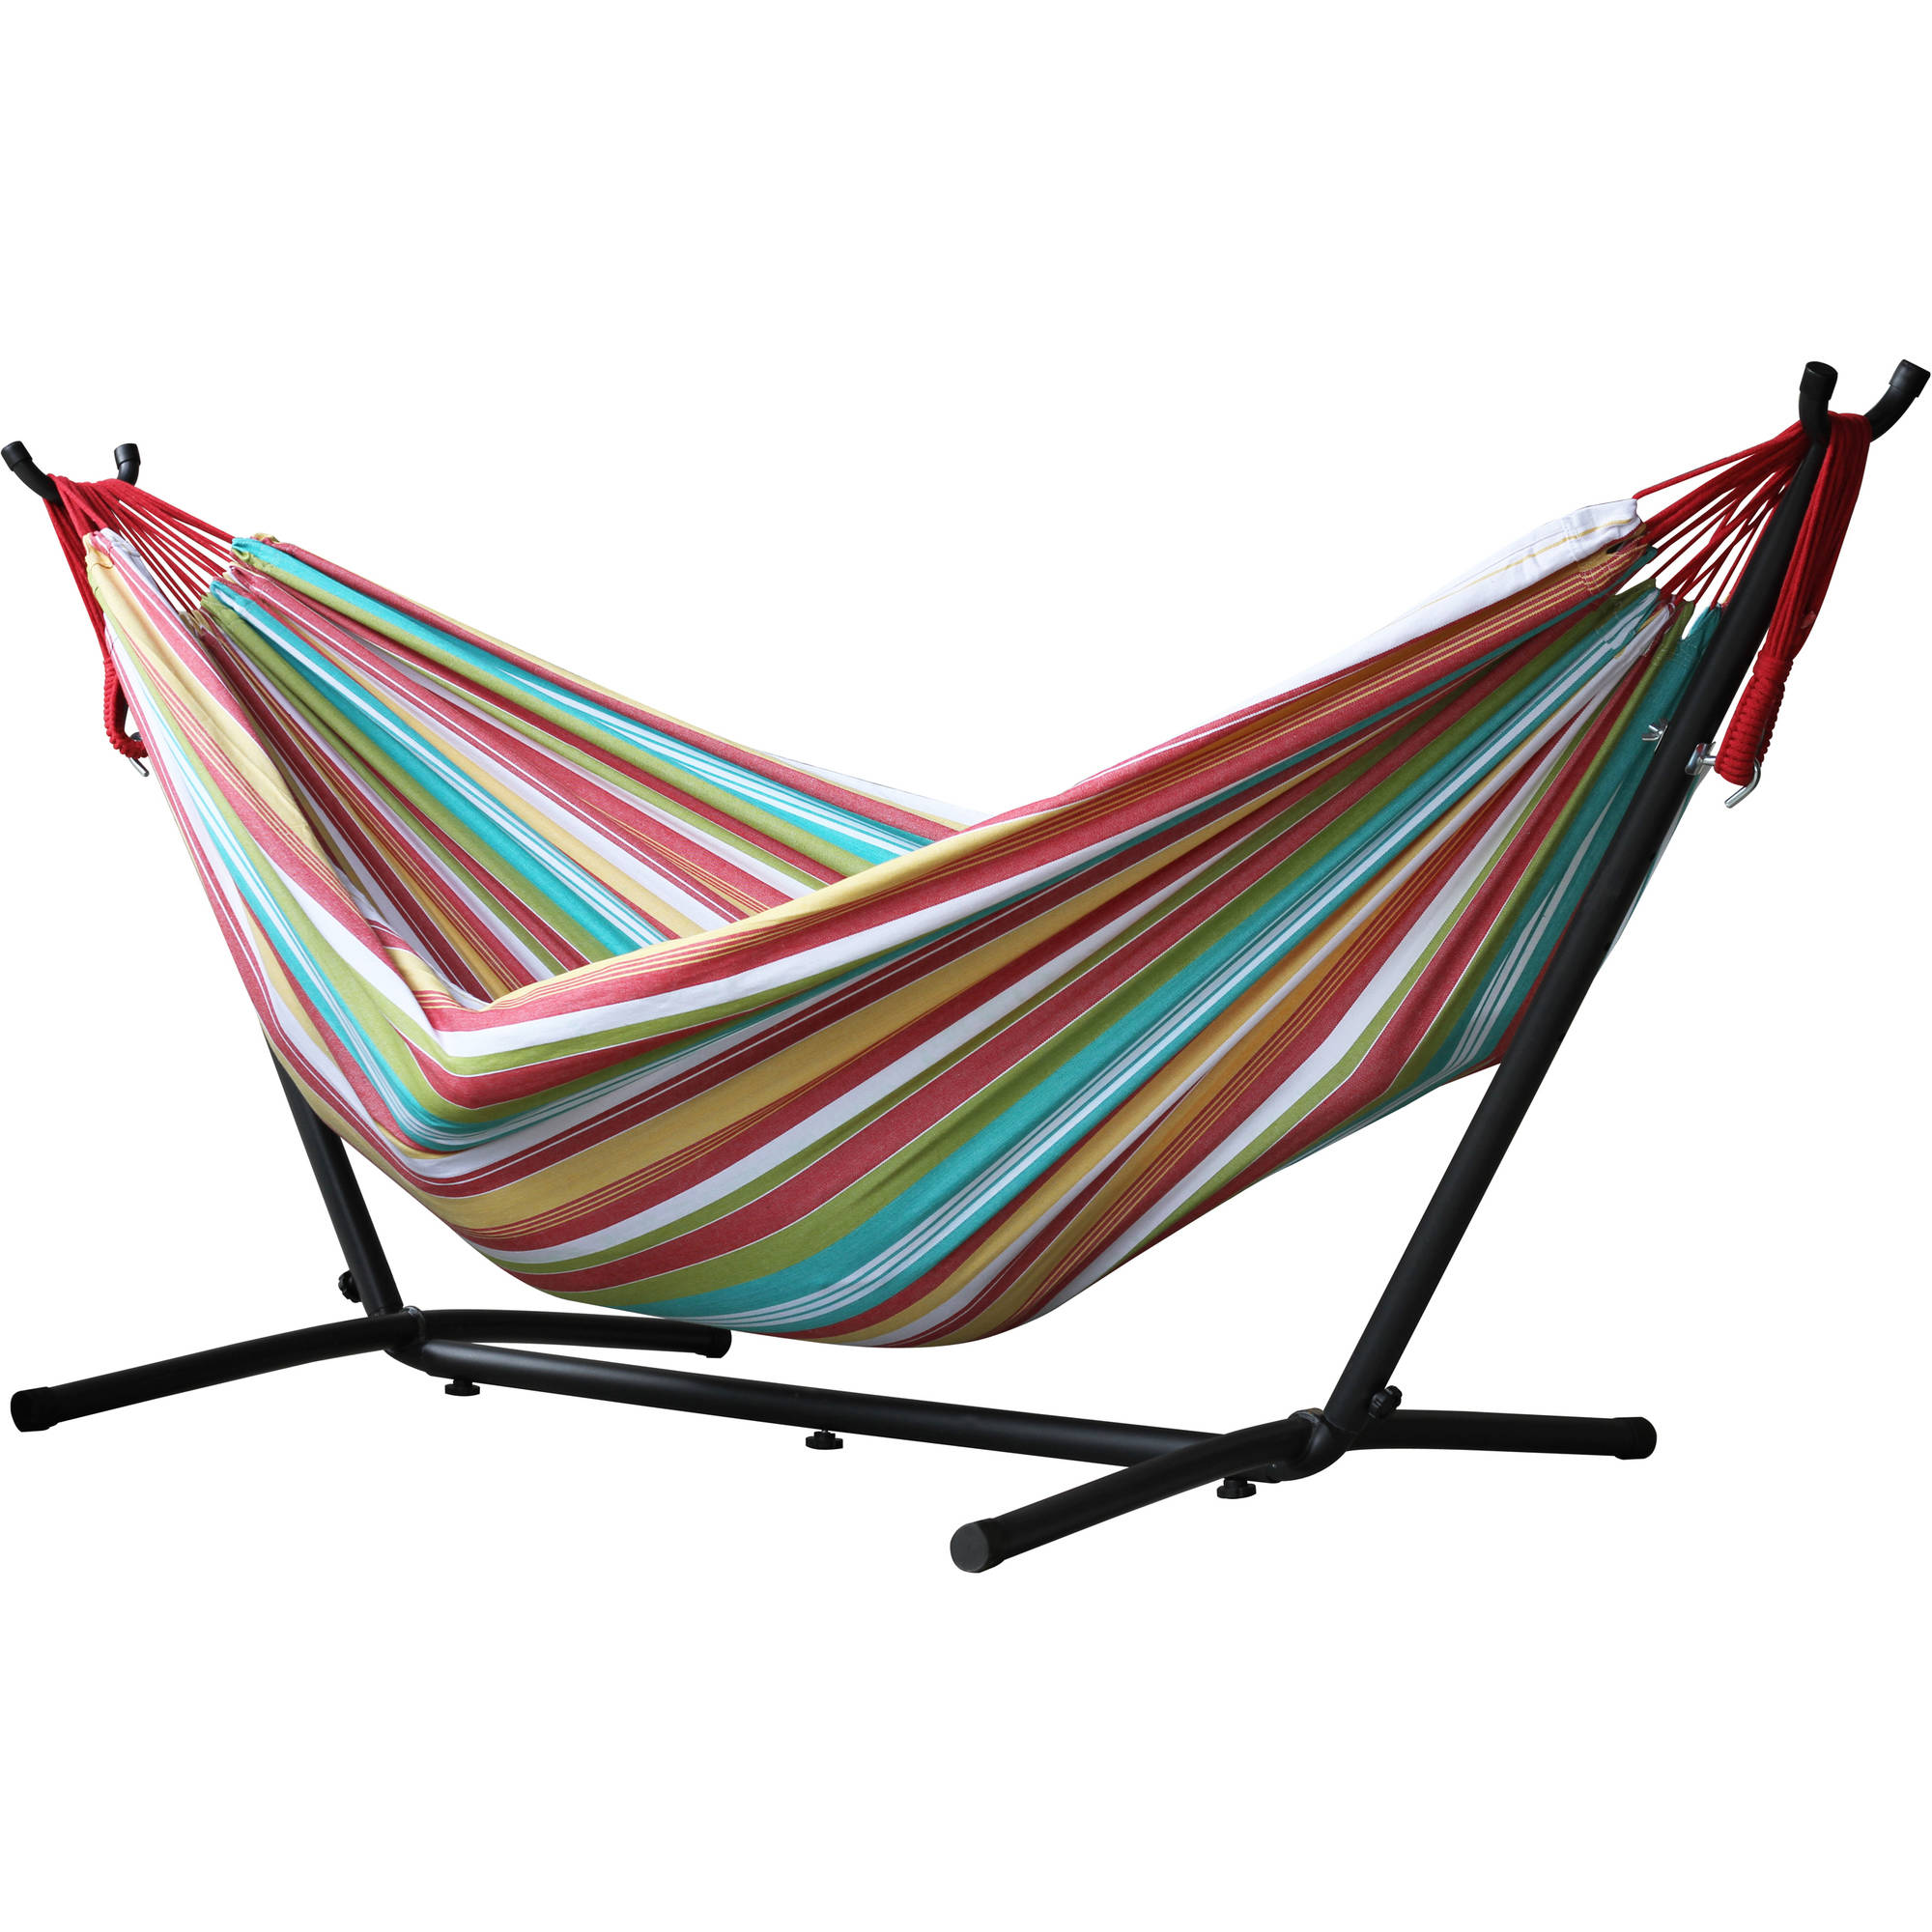 Vivere's Combo Double Hammock with Stand, Salsa, 9'